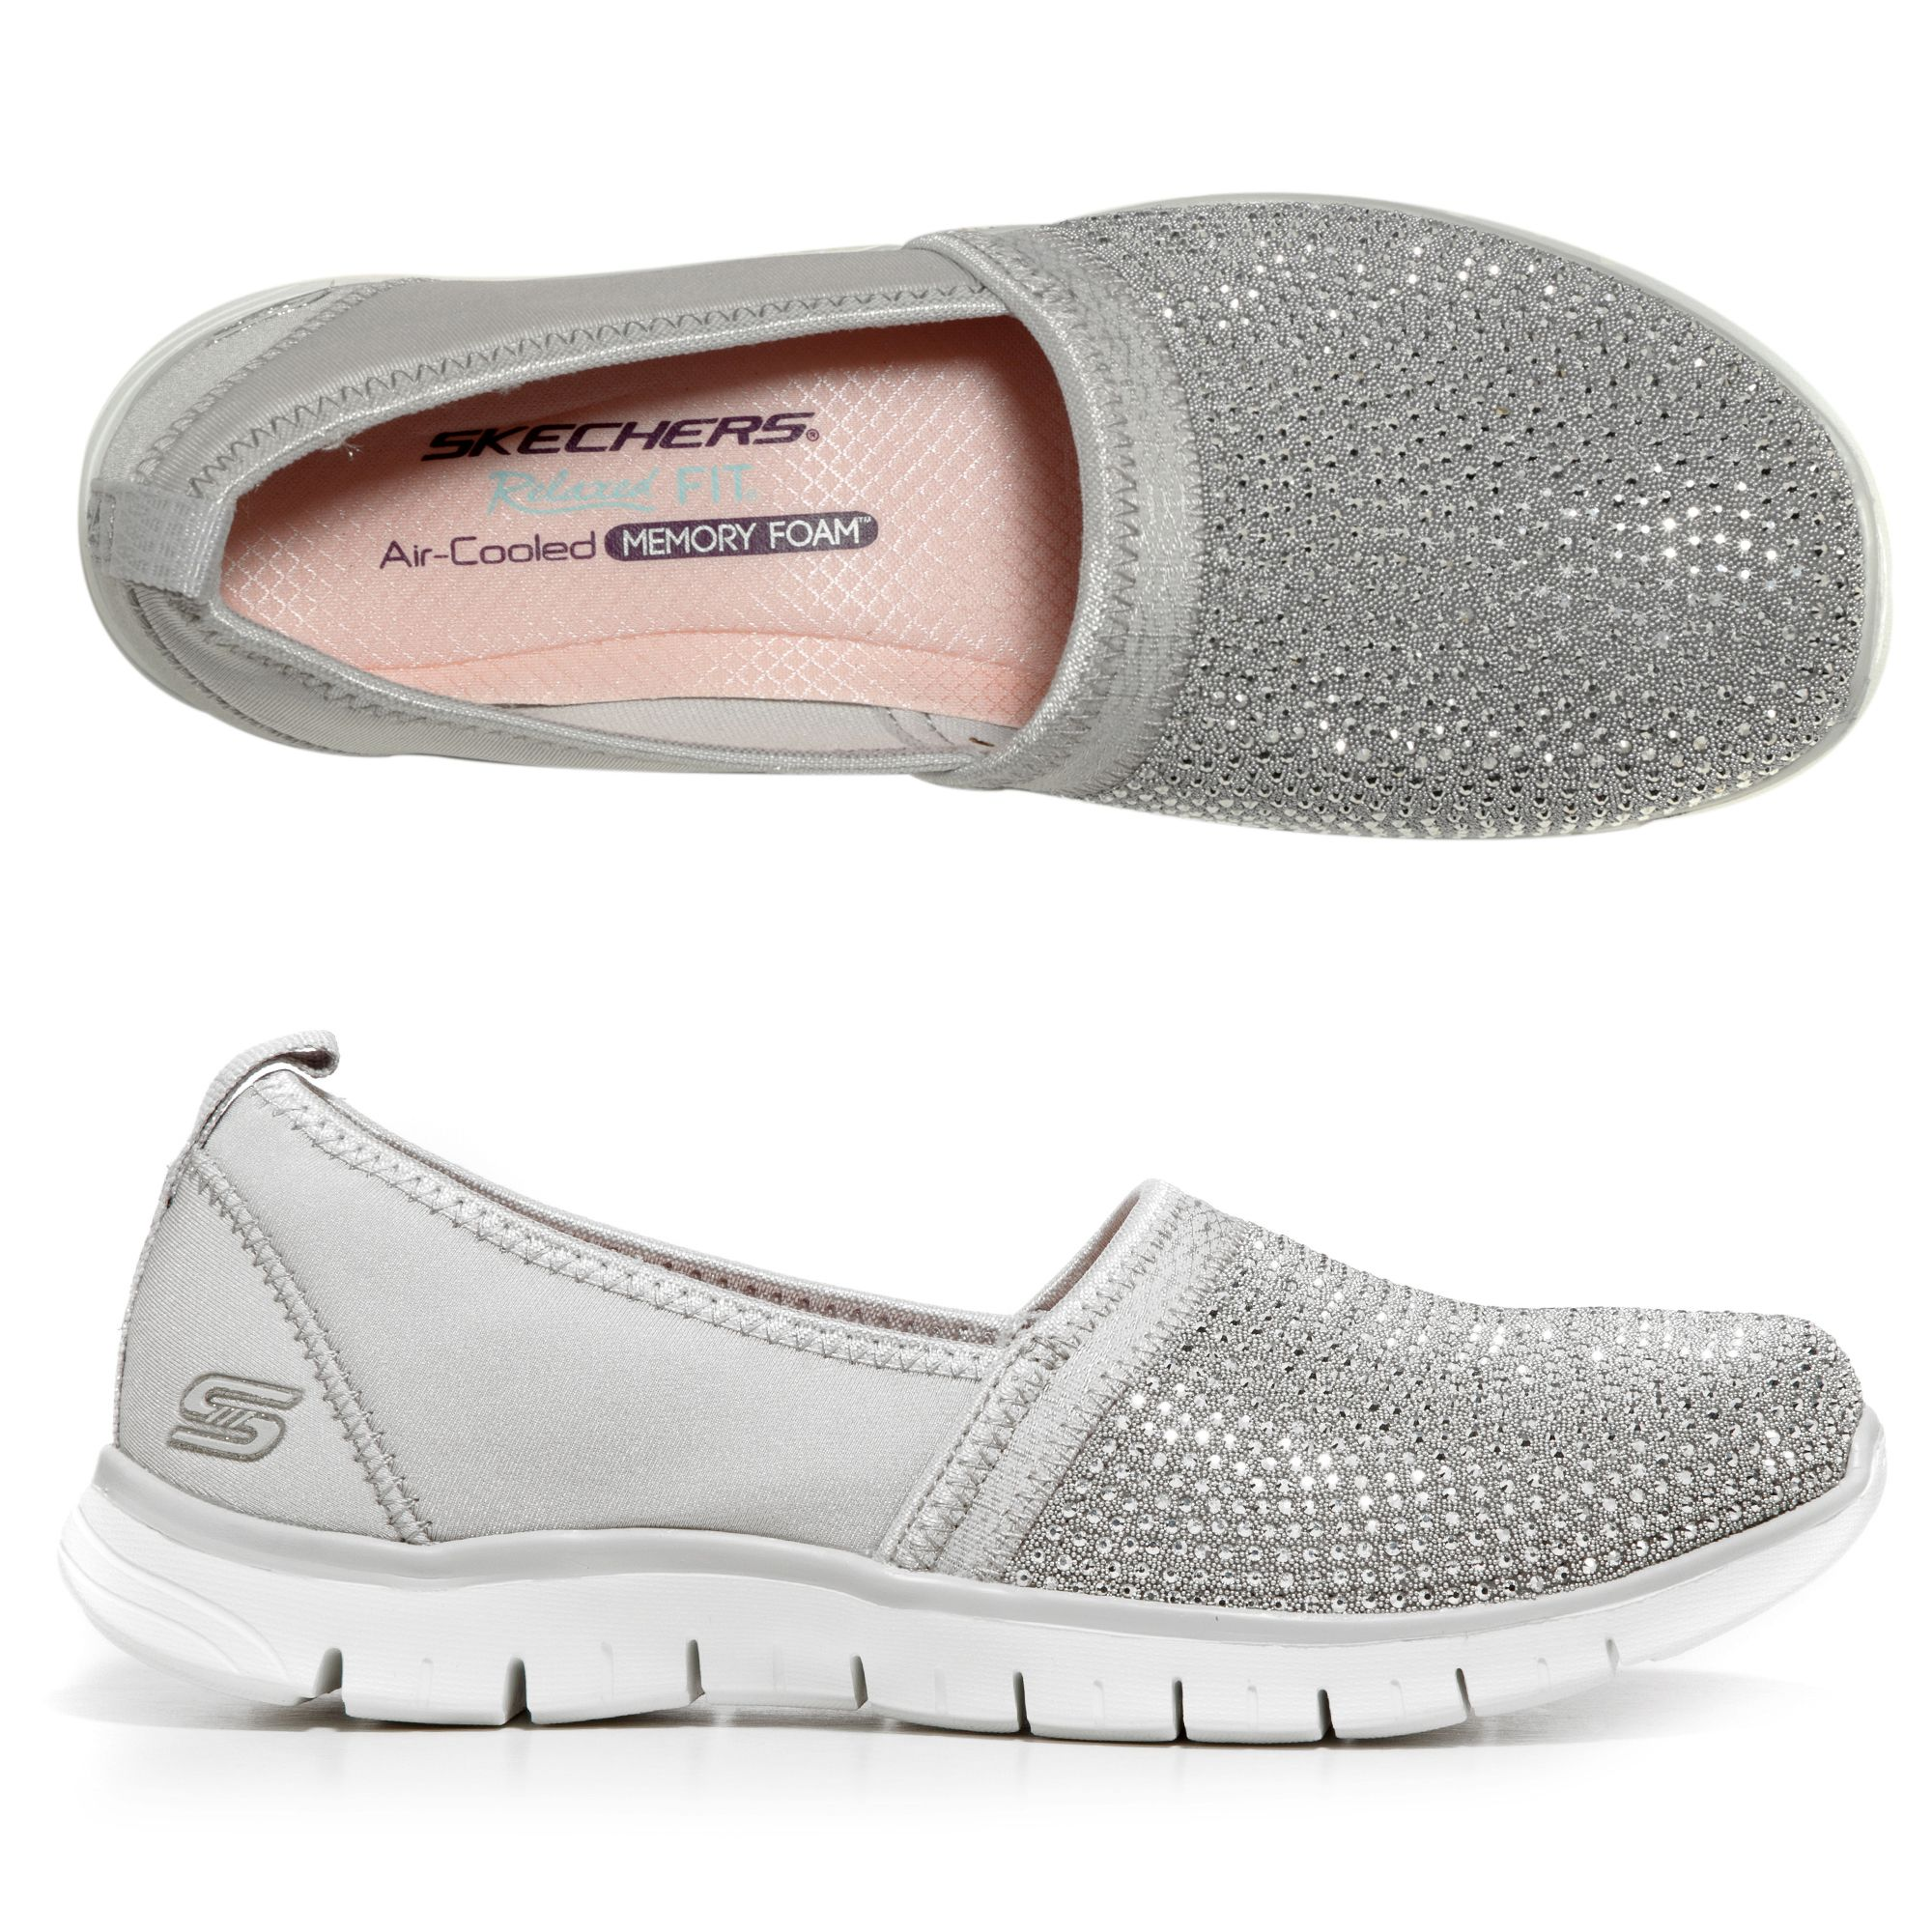 SKECHERS Damen Slipper Ez Flex Renew Strasssteine Memory Foam —